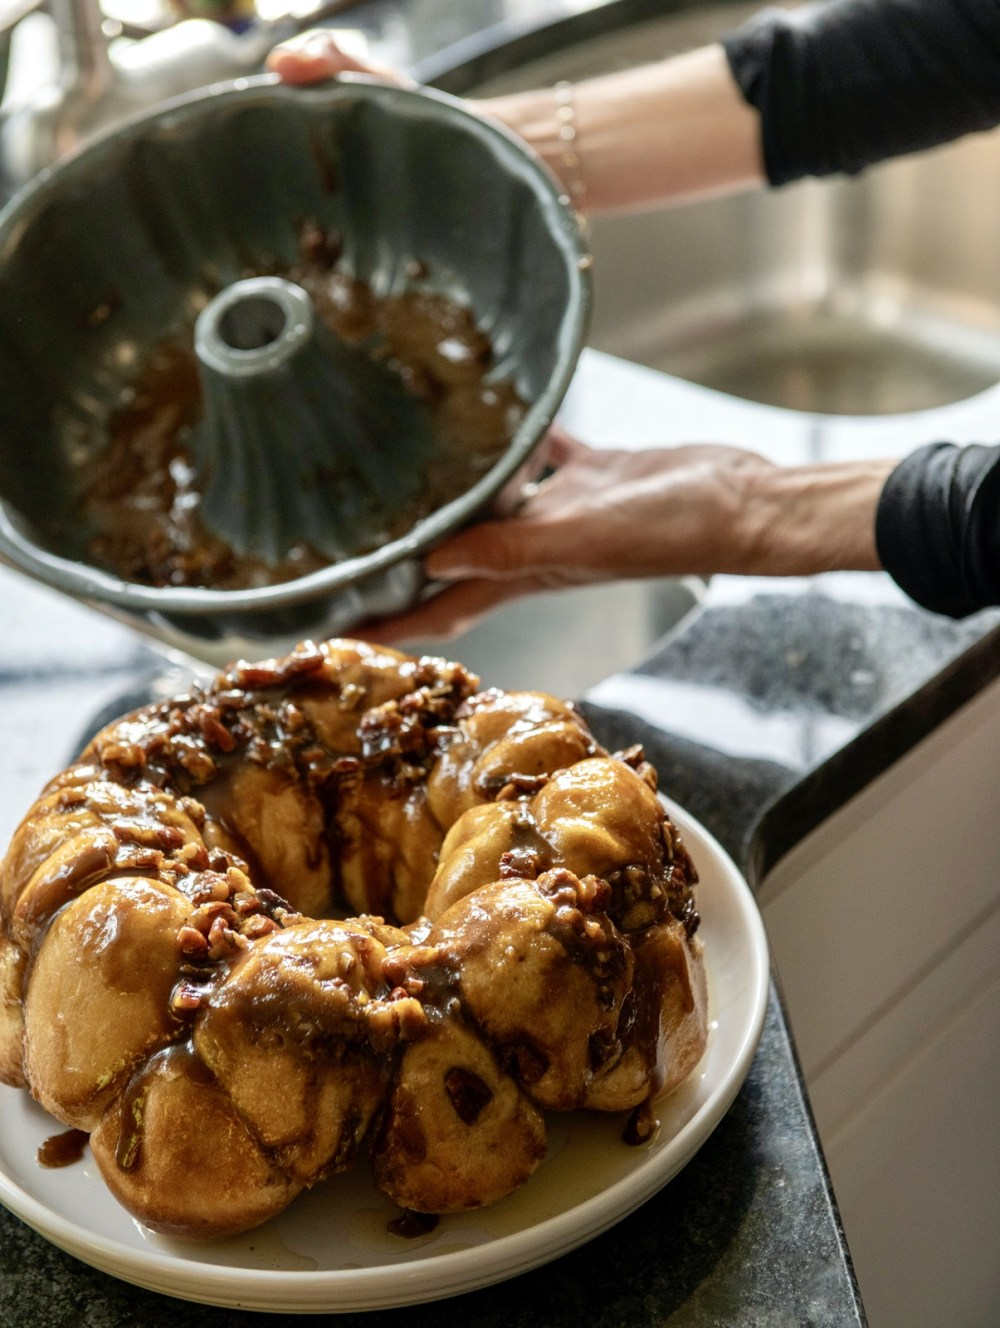 A clever shortcut and prep-ahead convenience make these tried-and-true sticky buns as easy as they are delicious. The recipe has long been a family favorite on holidays and special occasions. As an added bonus, the aroma wafting from your kitchen will remind you of the corner bakery!